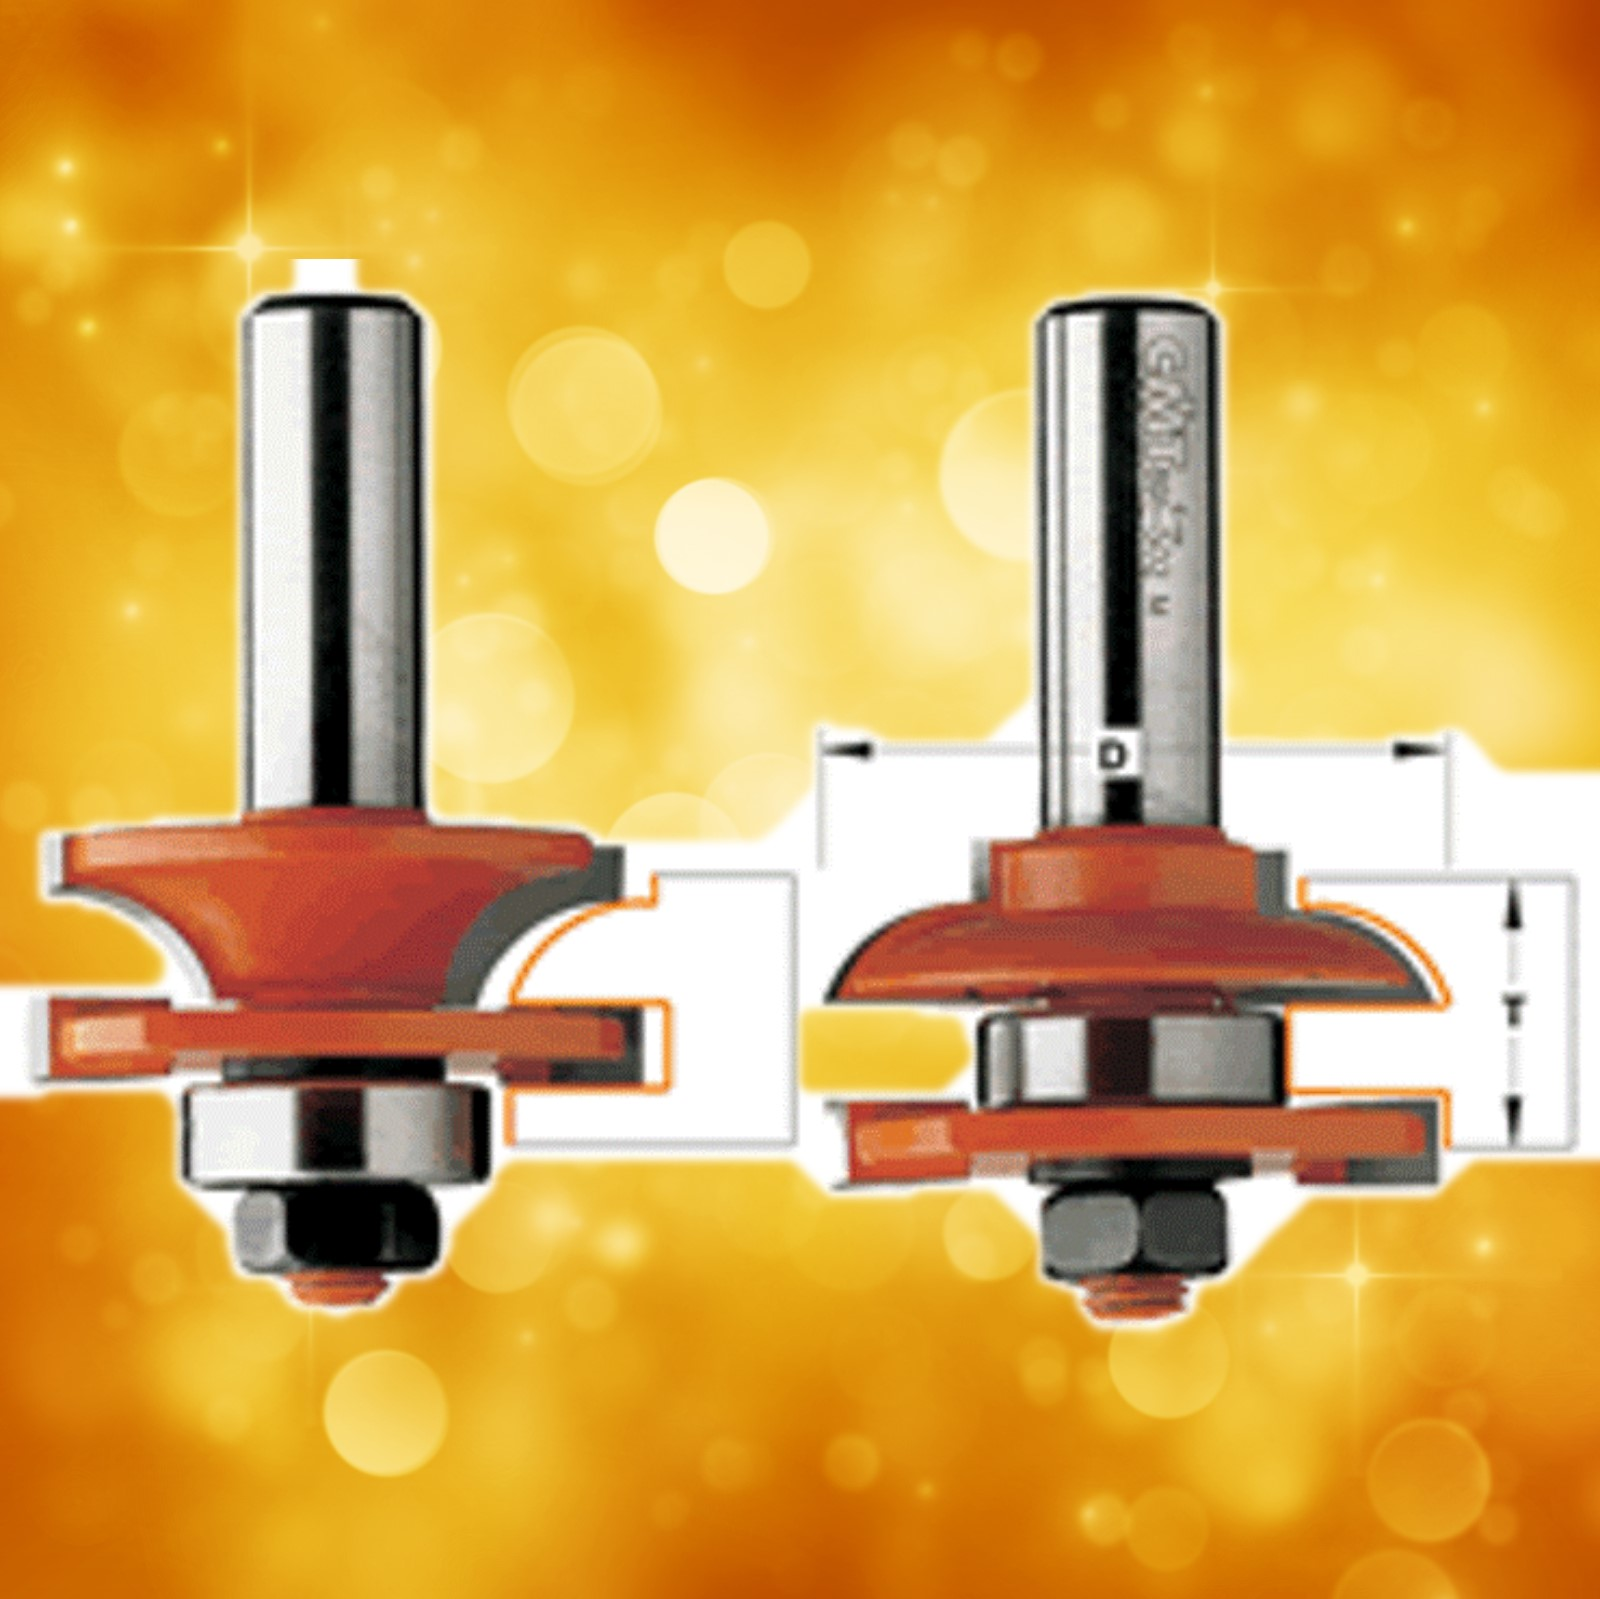 CMT Rail and Stile Router Bit Set 891.502.11 - Profile B